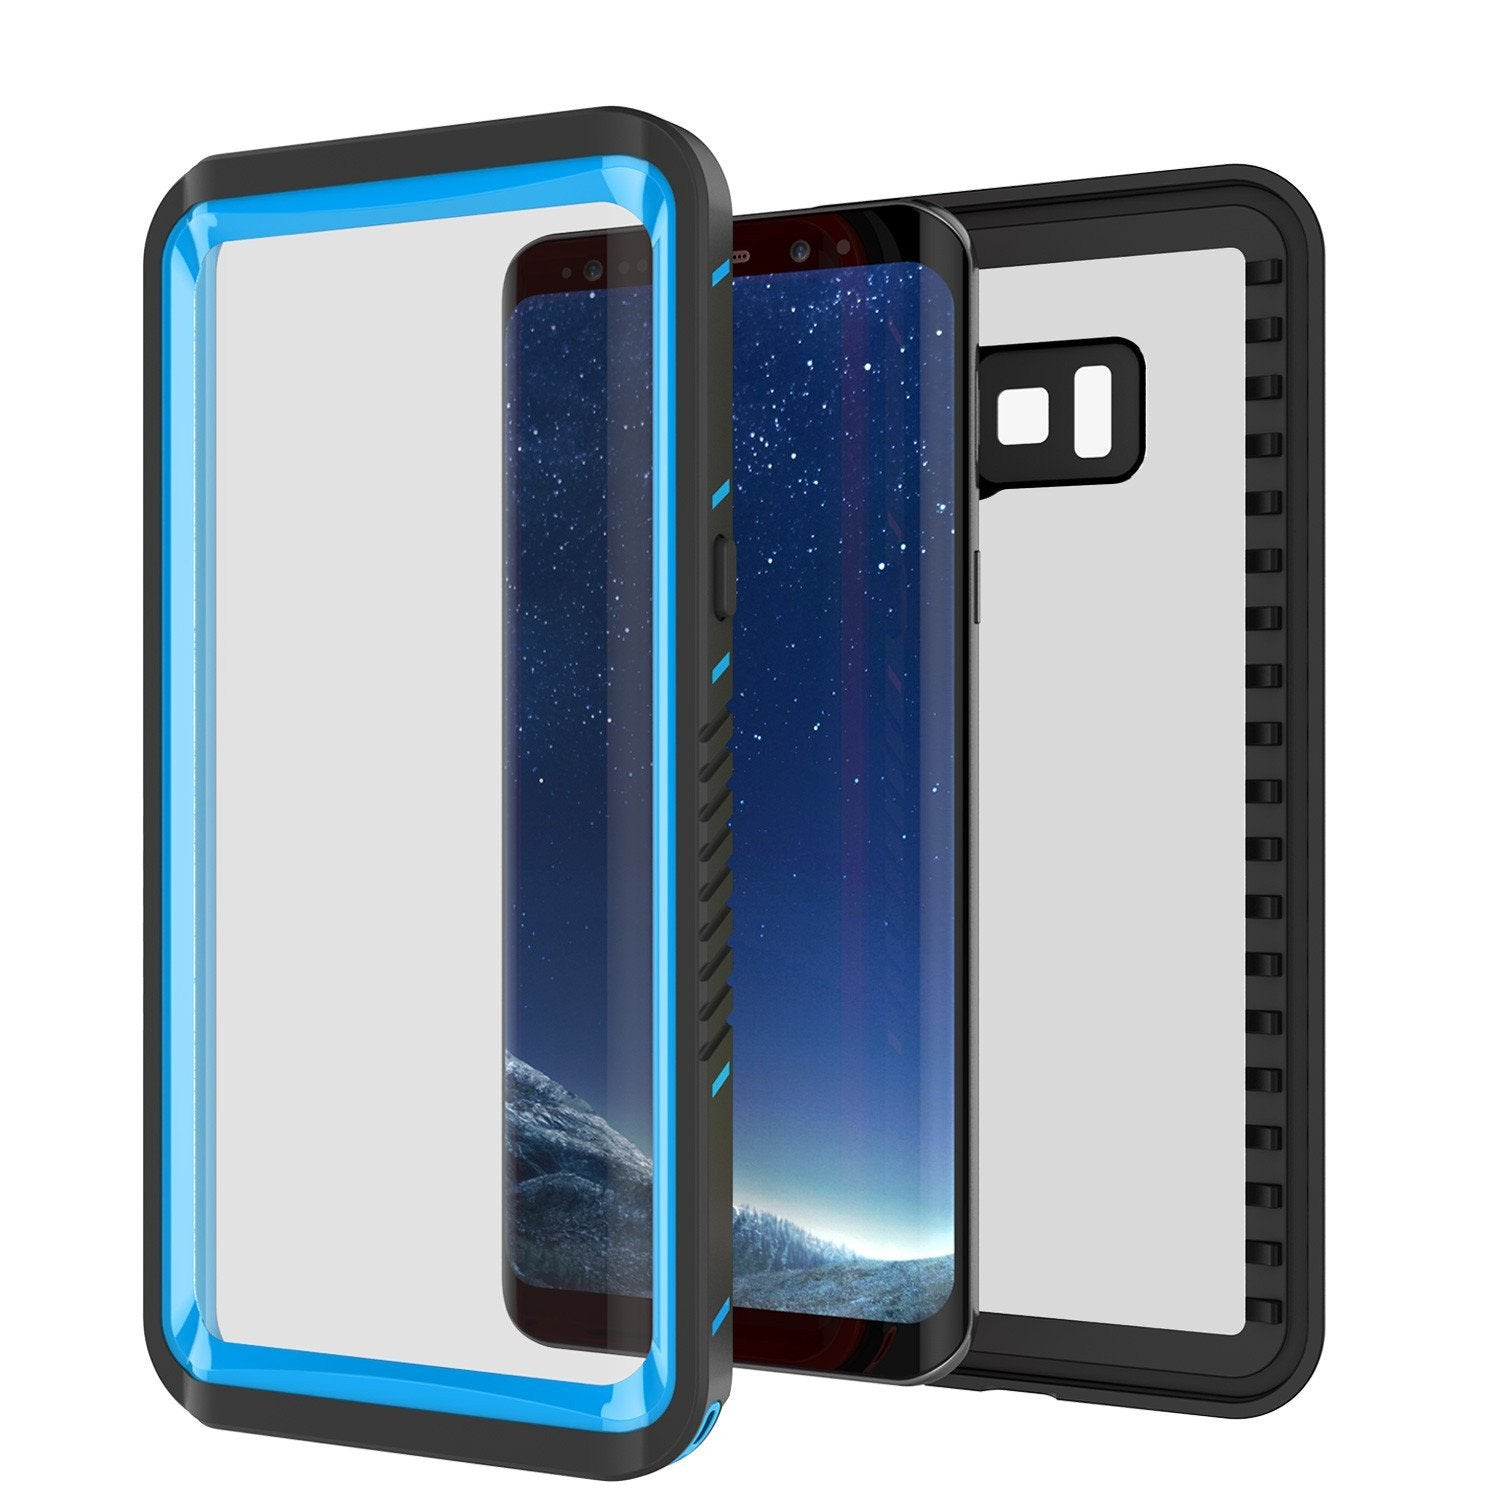 Galaxy S8 Punkcase Extreme Series Slim Fit Armor Cover [Light Blue]